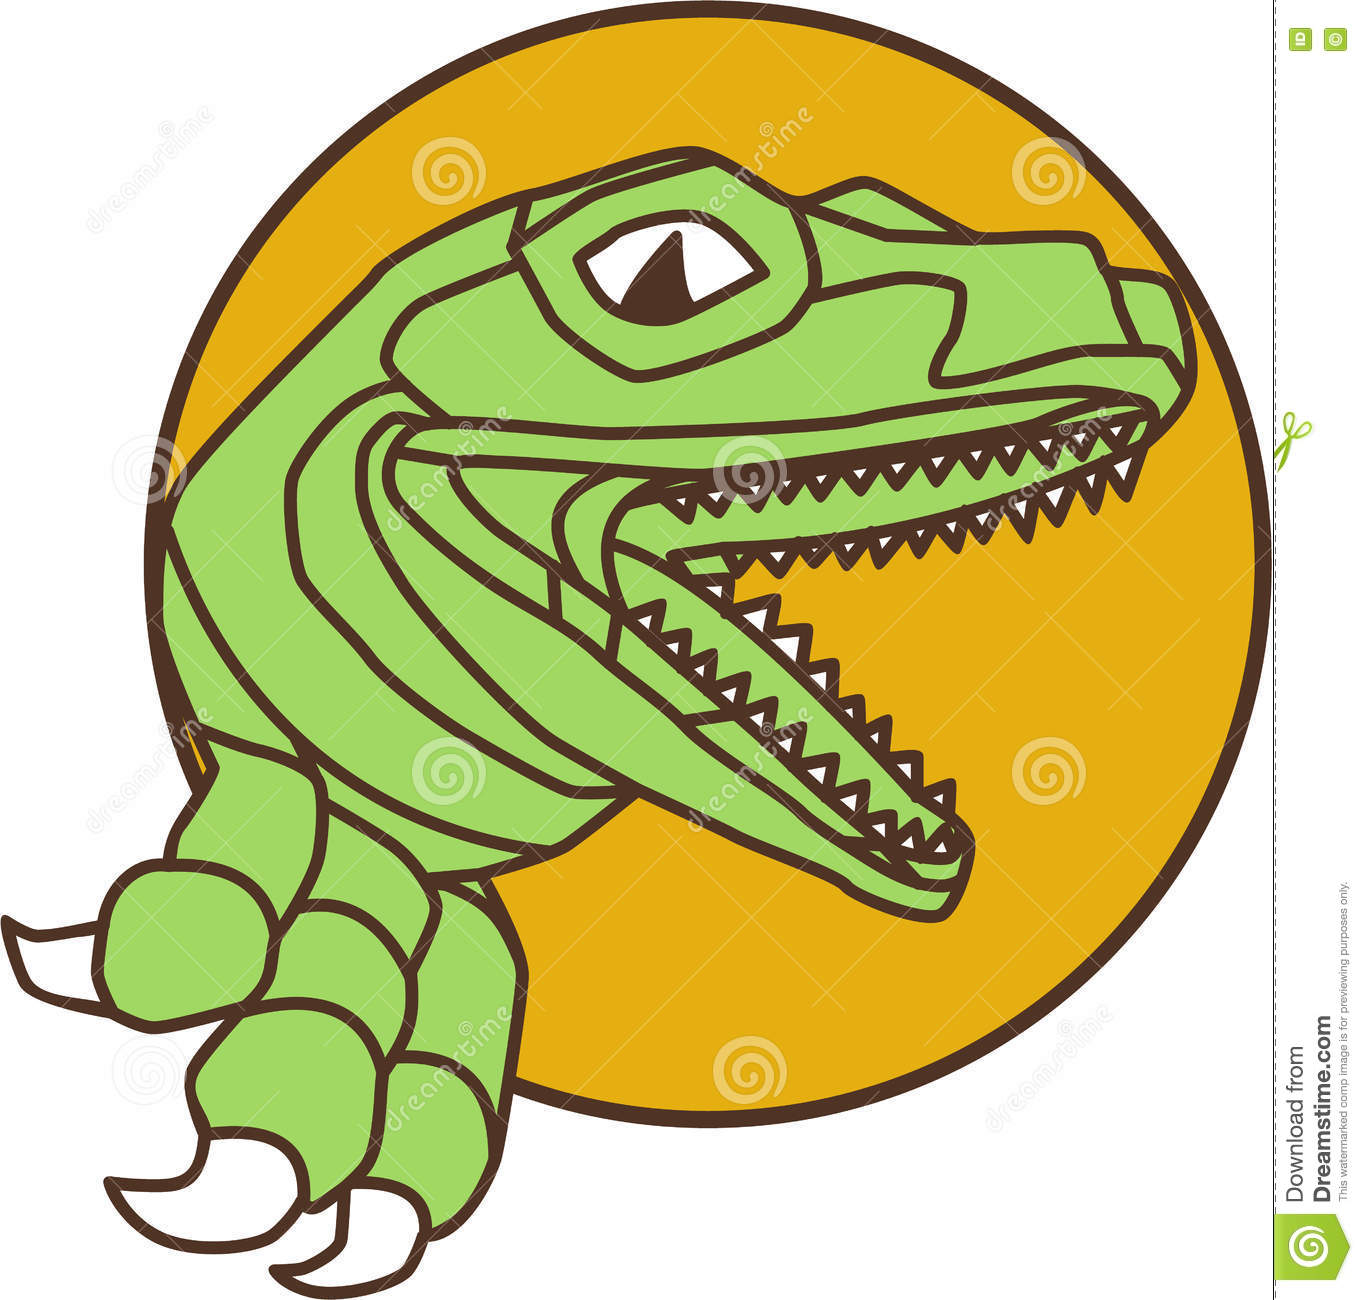 Raptor Head Breaking Out Wall Circle Drawing Stock Illustration ...